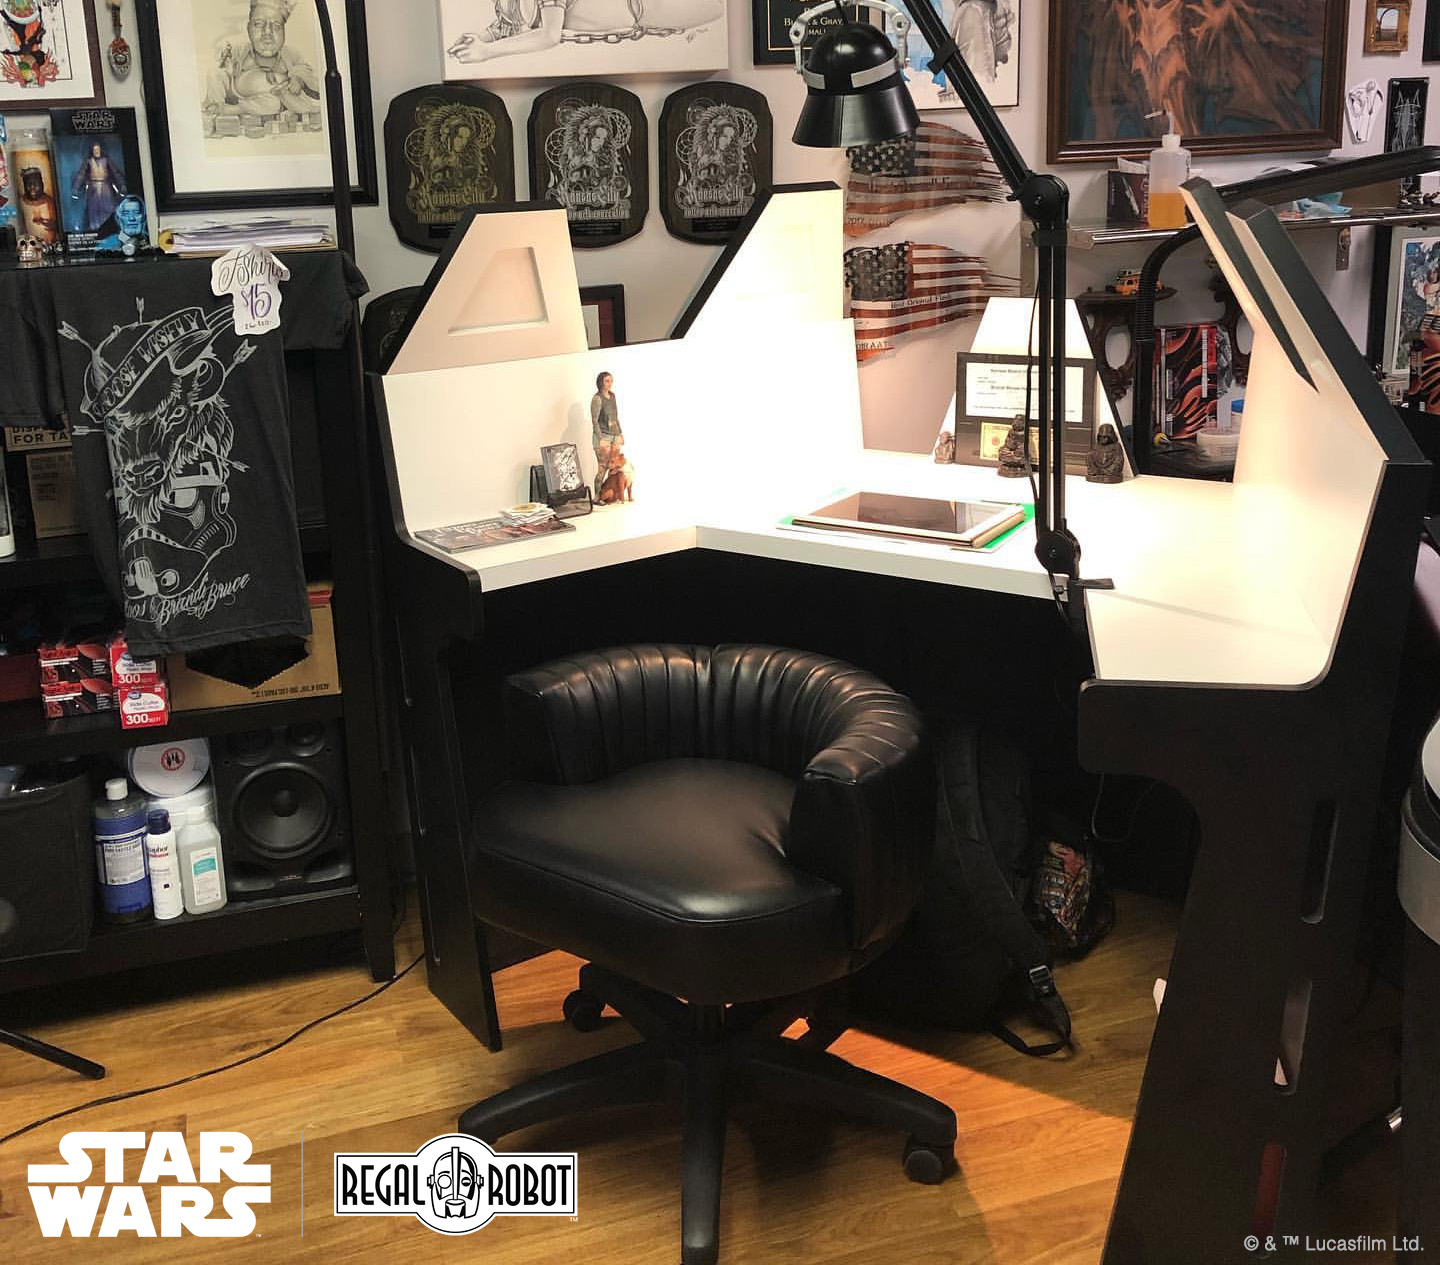 Star Wars custom Darth Vader furniture by Regal Robot